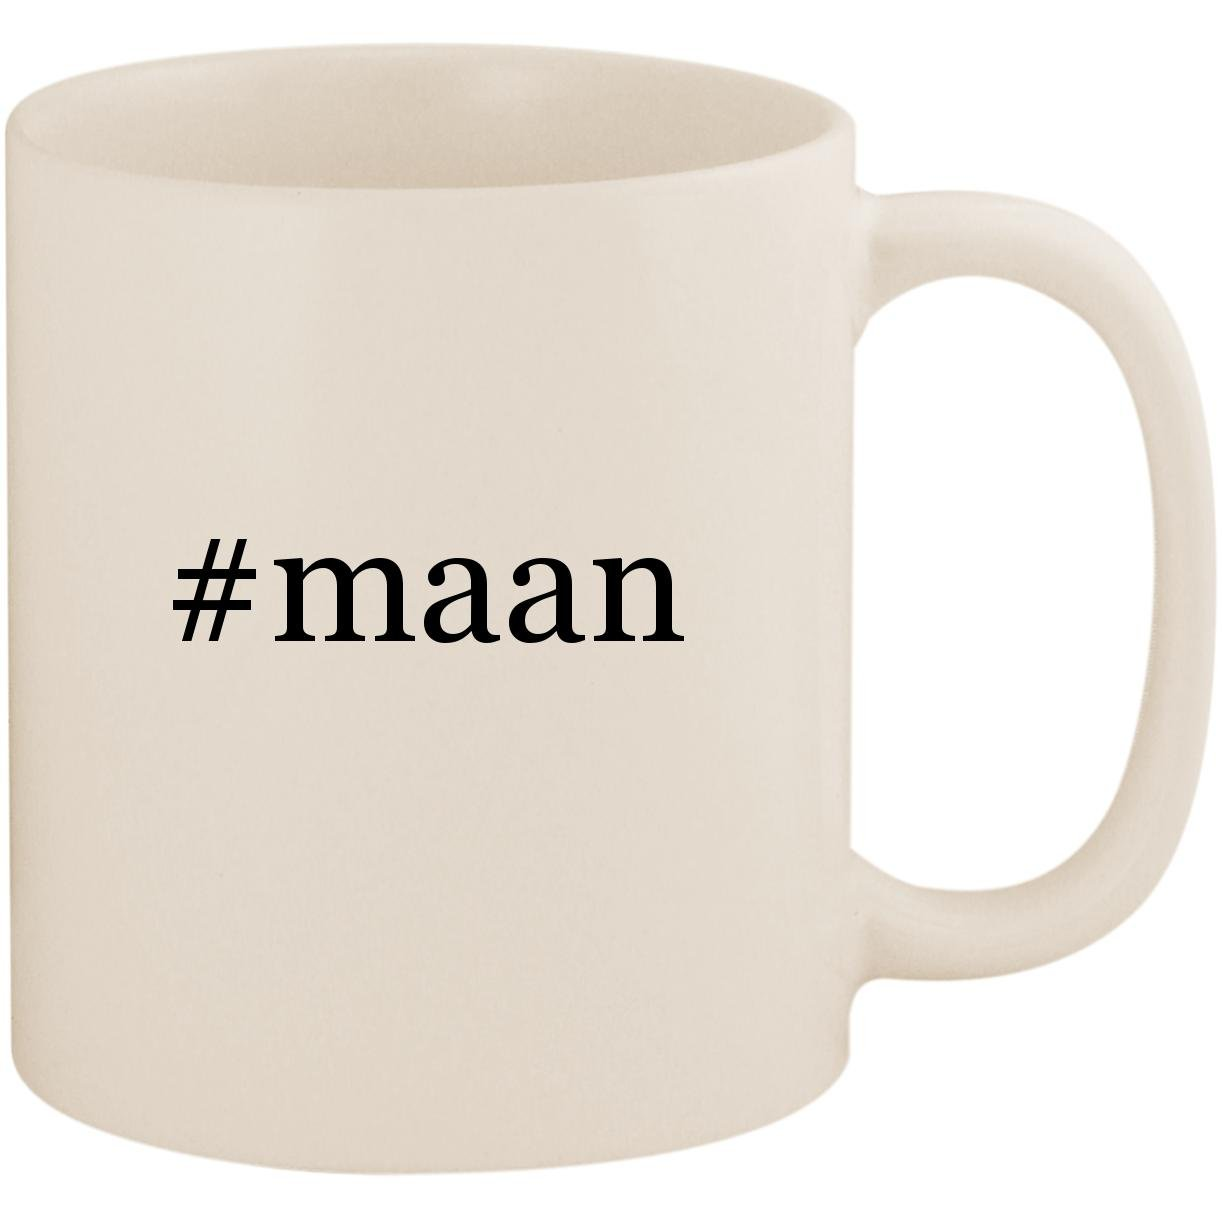 #maan - 11oz Ceramic Coffee Mug Cup, White by Molandra Products